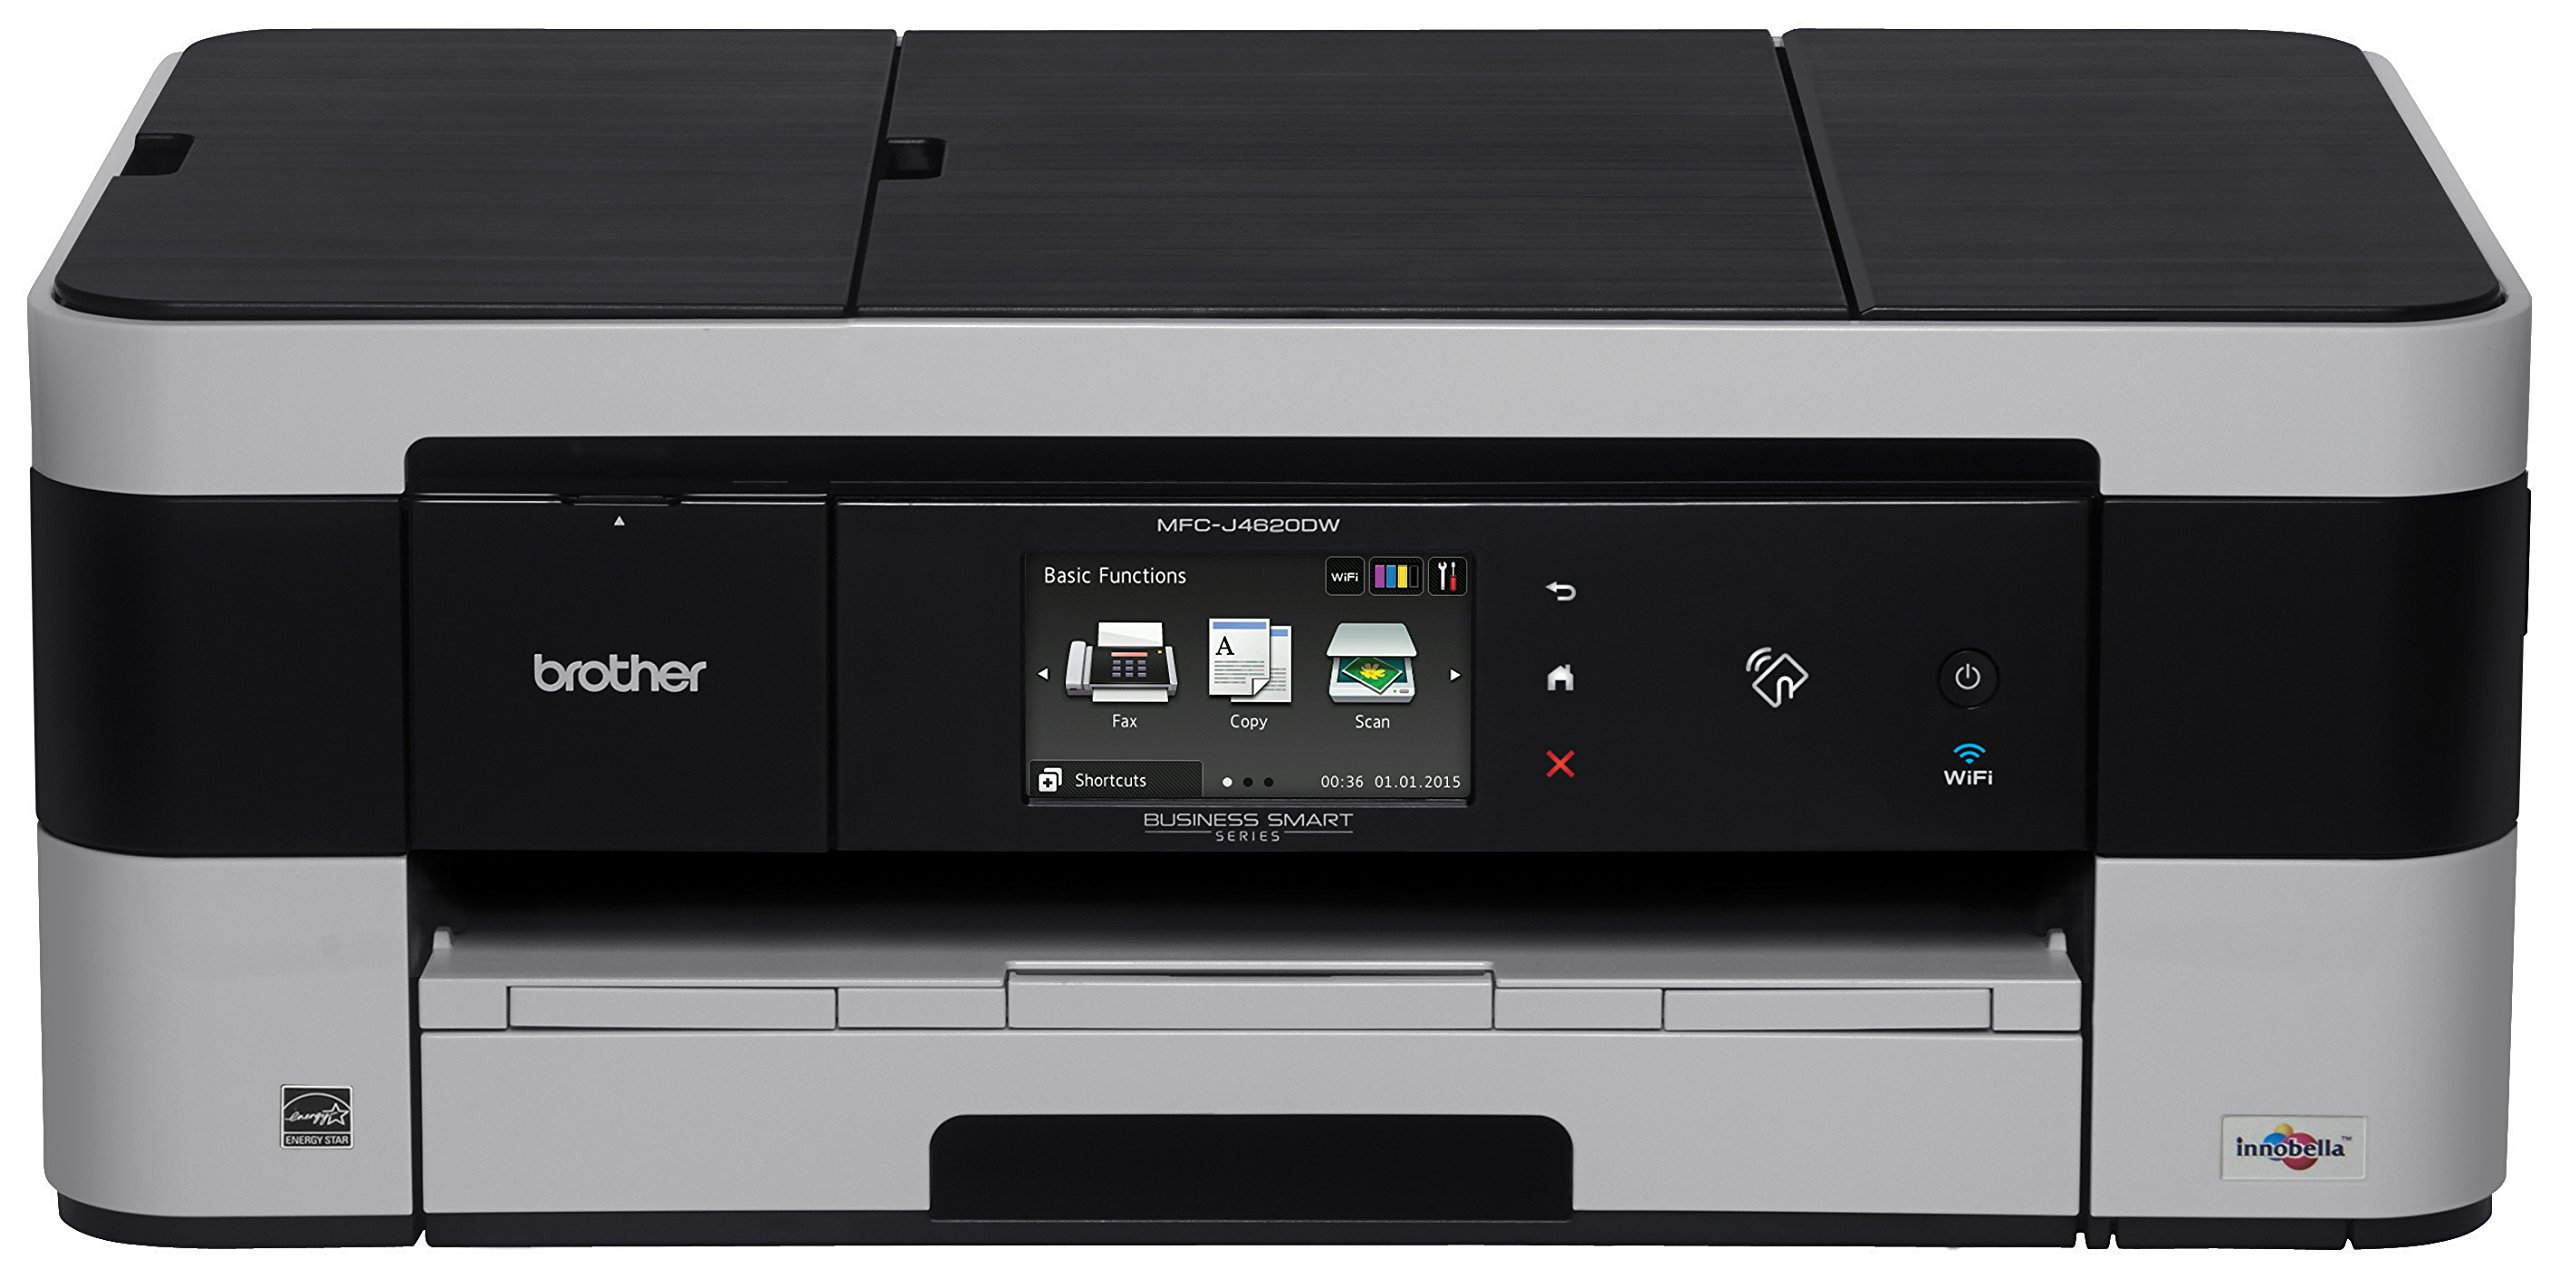 Brother Business Smart MFC-J4620DW Inkjet All-in-One Printer with up to 11x17-Inch Printing and NFC Capability by Brother